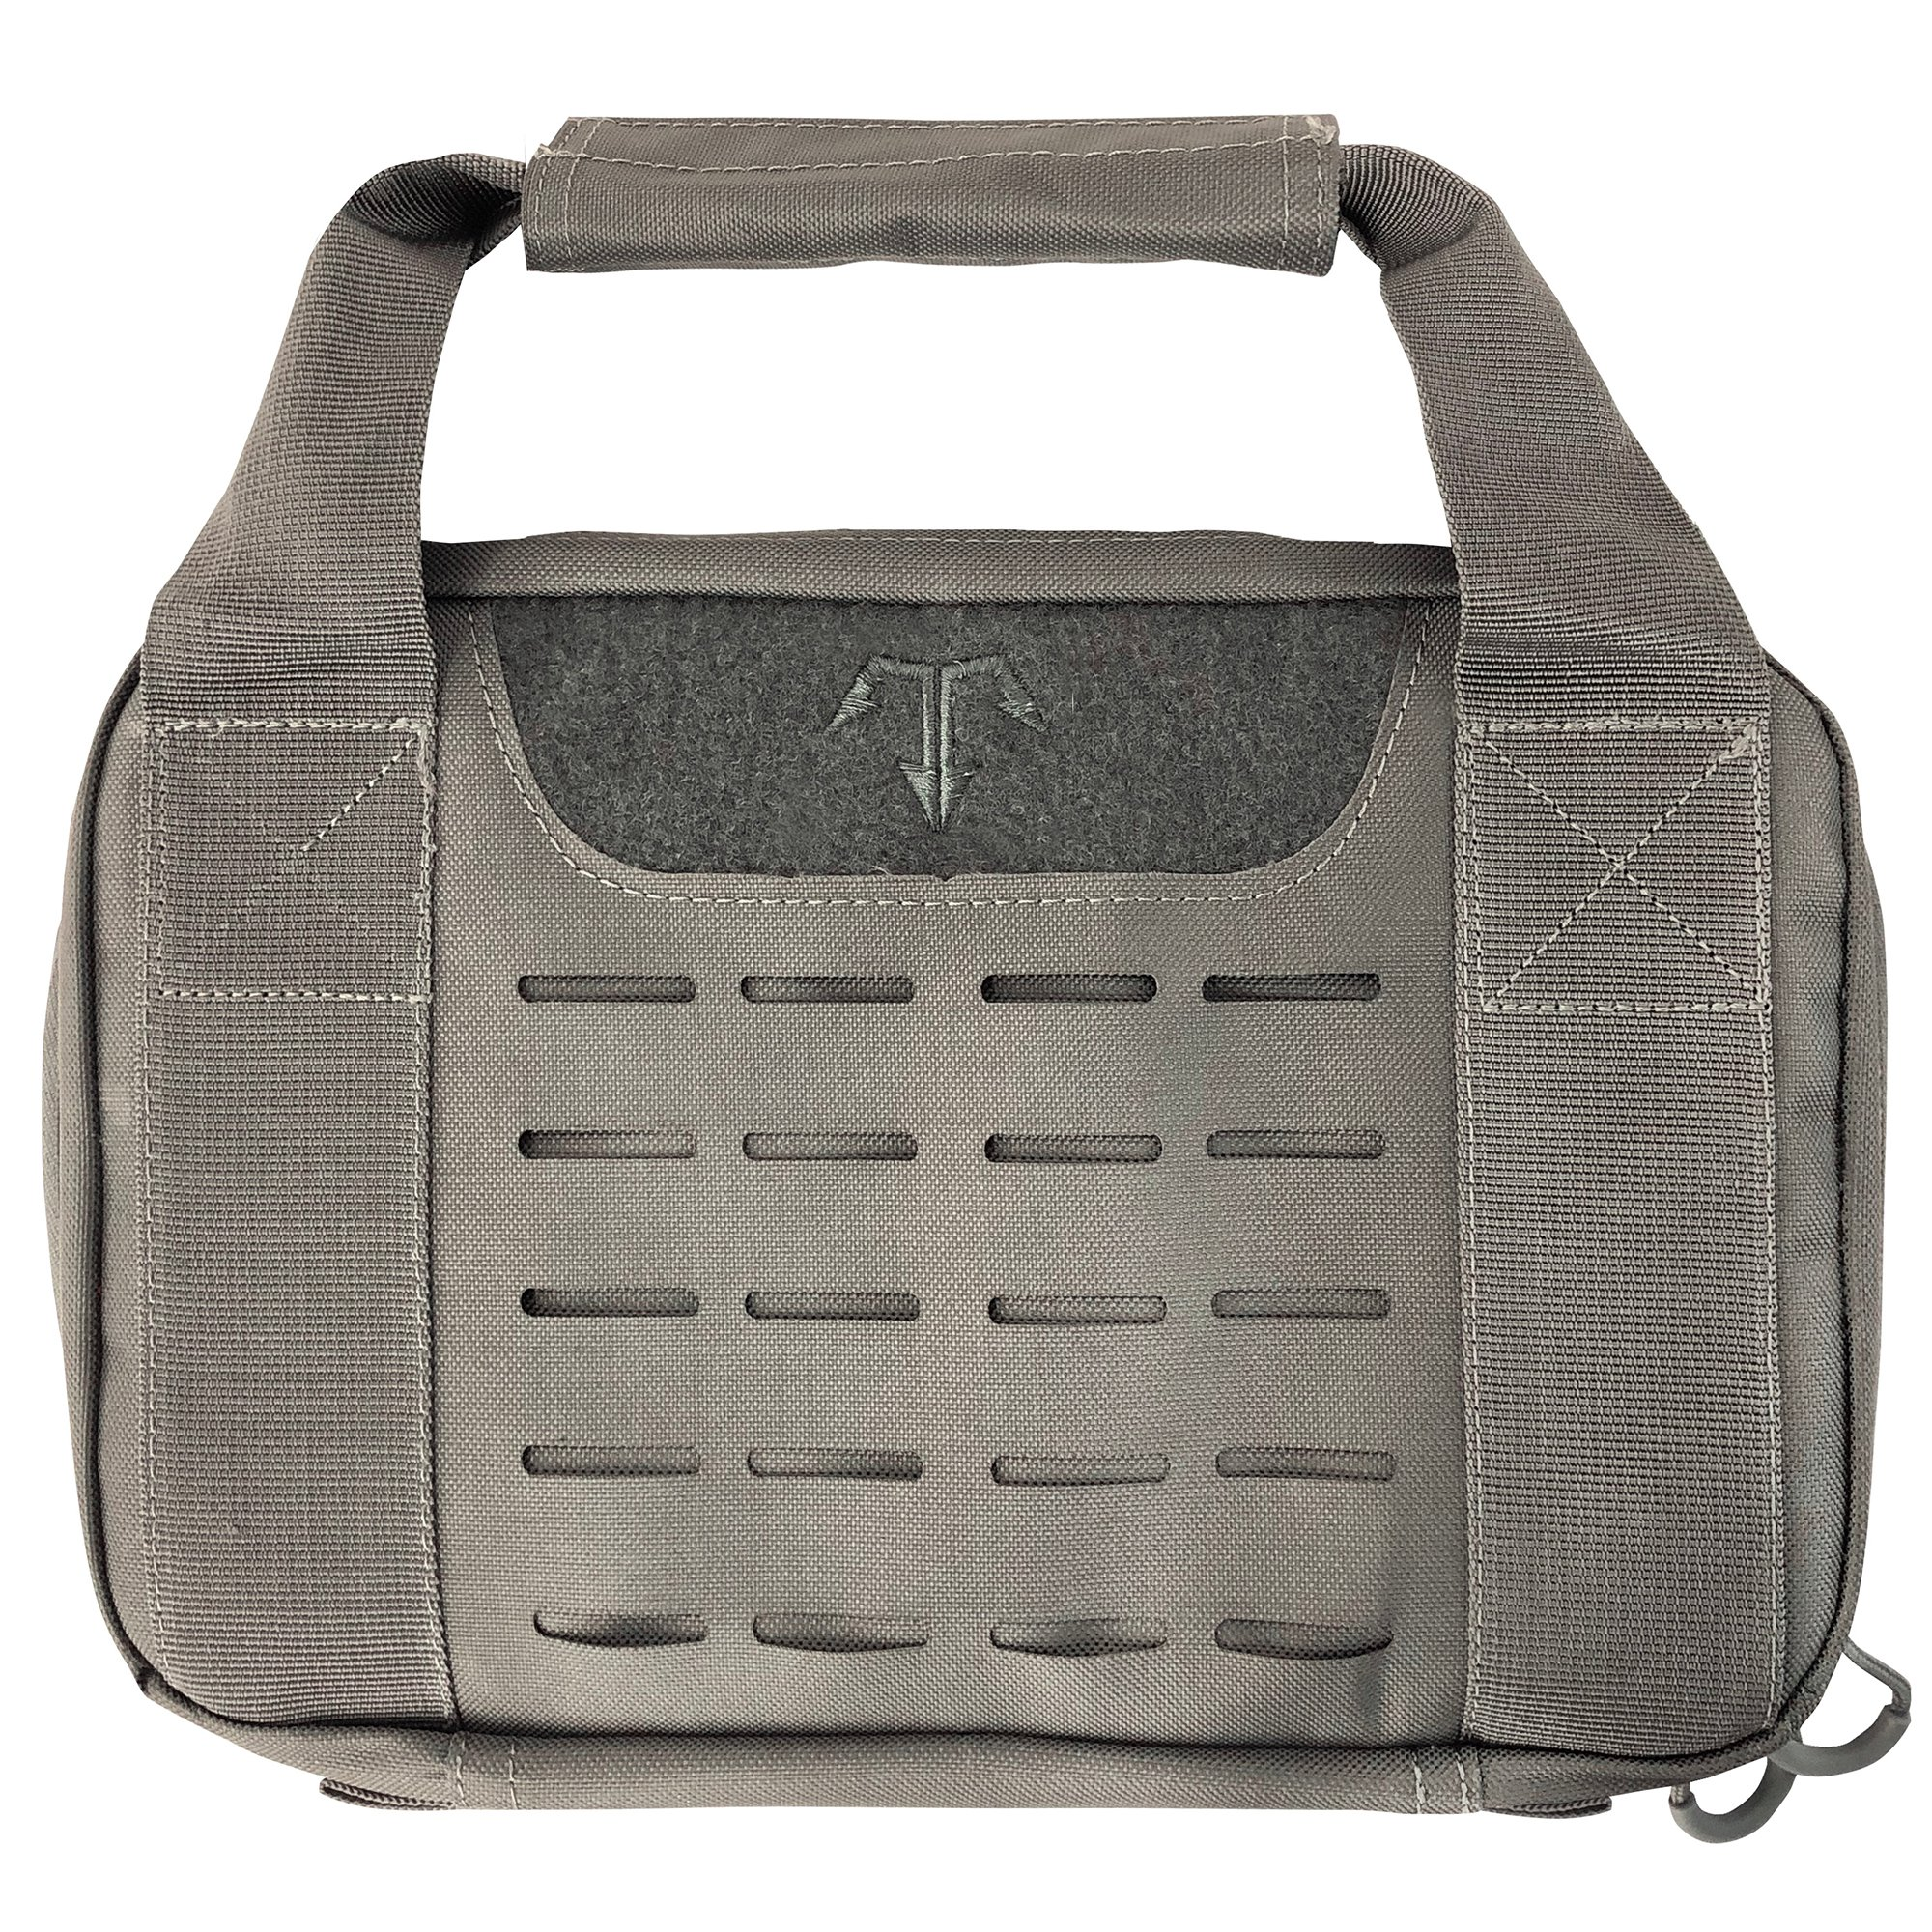 Triton Tactical 2nd Amendment Series Handgun Case